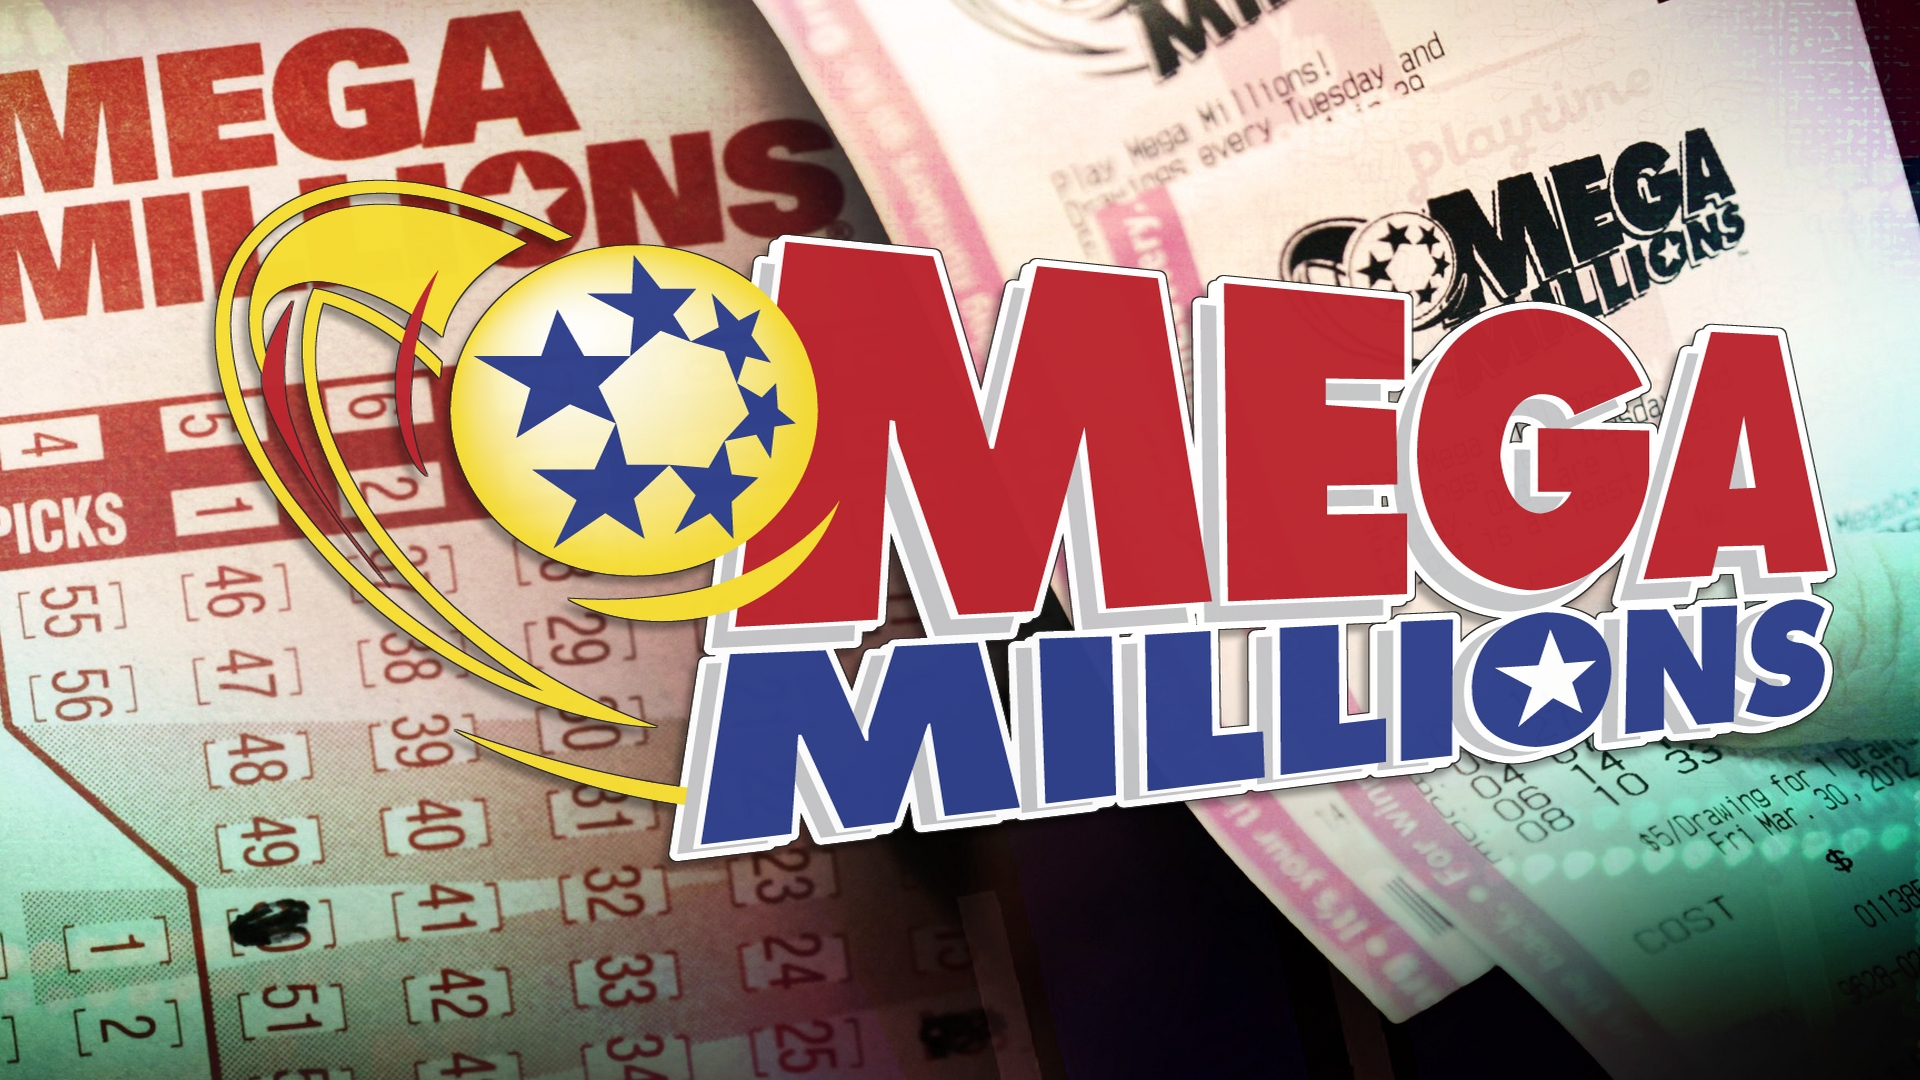 A winning ticket for the Mega Millions jackpot has been sold